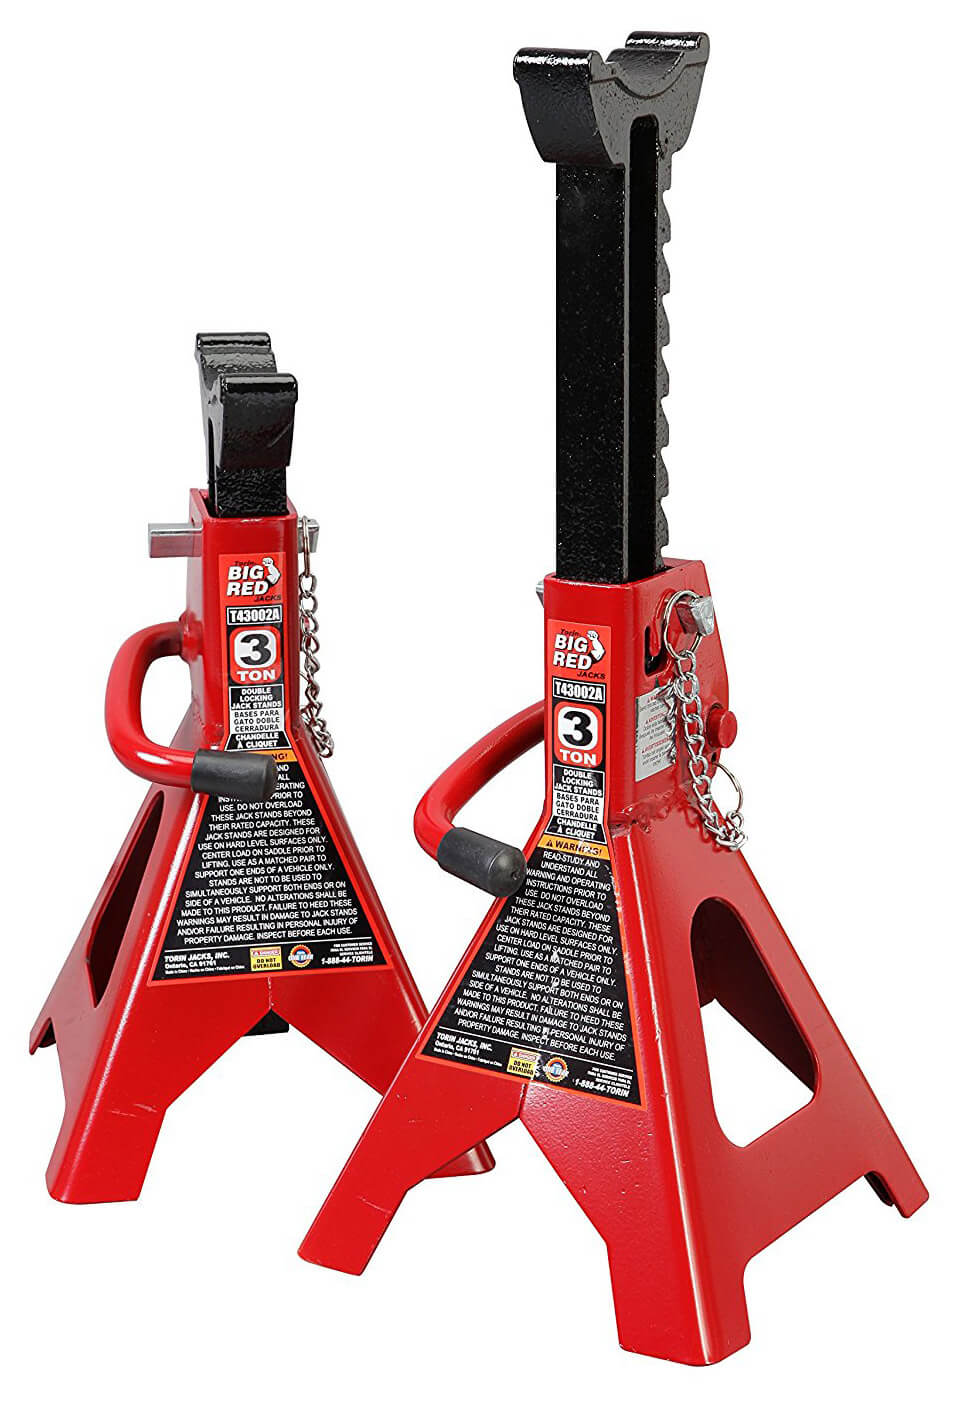 Torin T43002A 3 Ton Double Locking Jack Stands